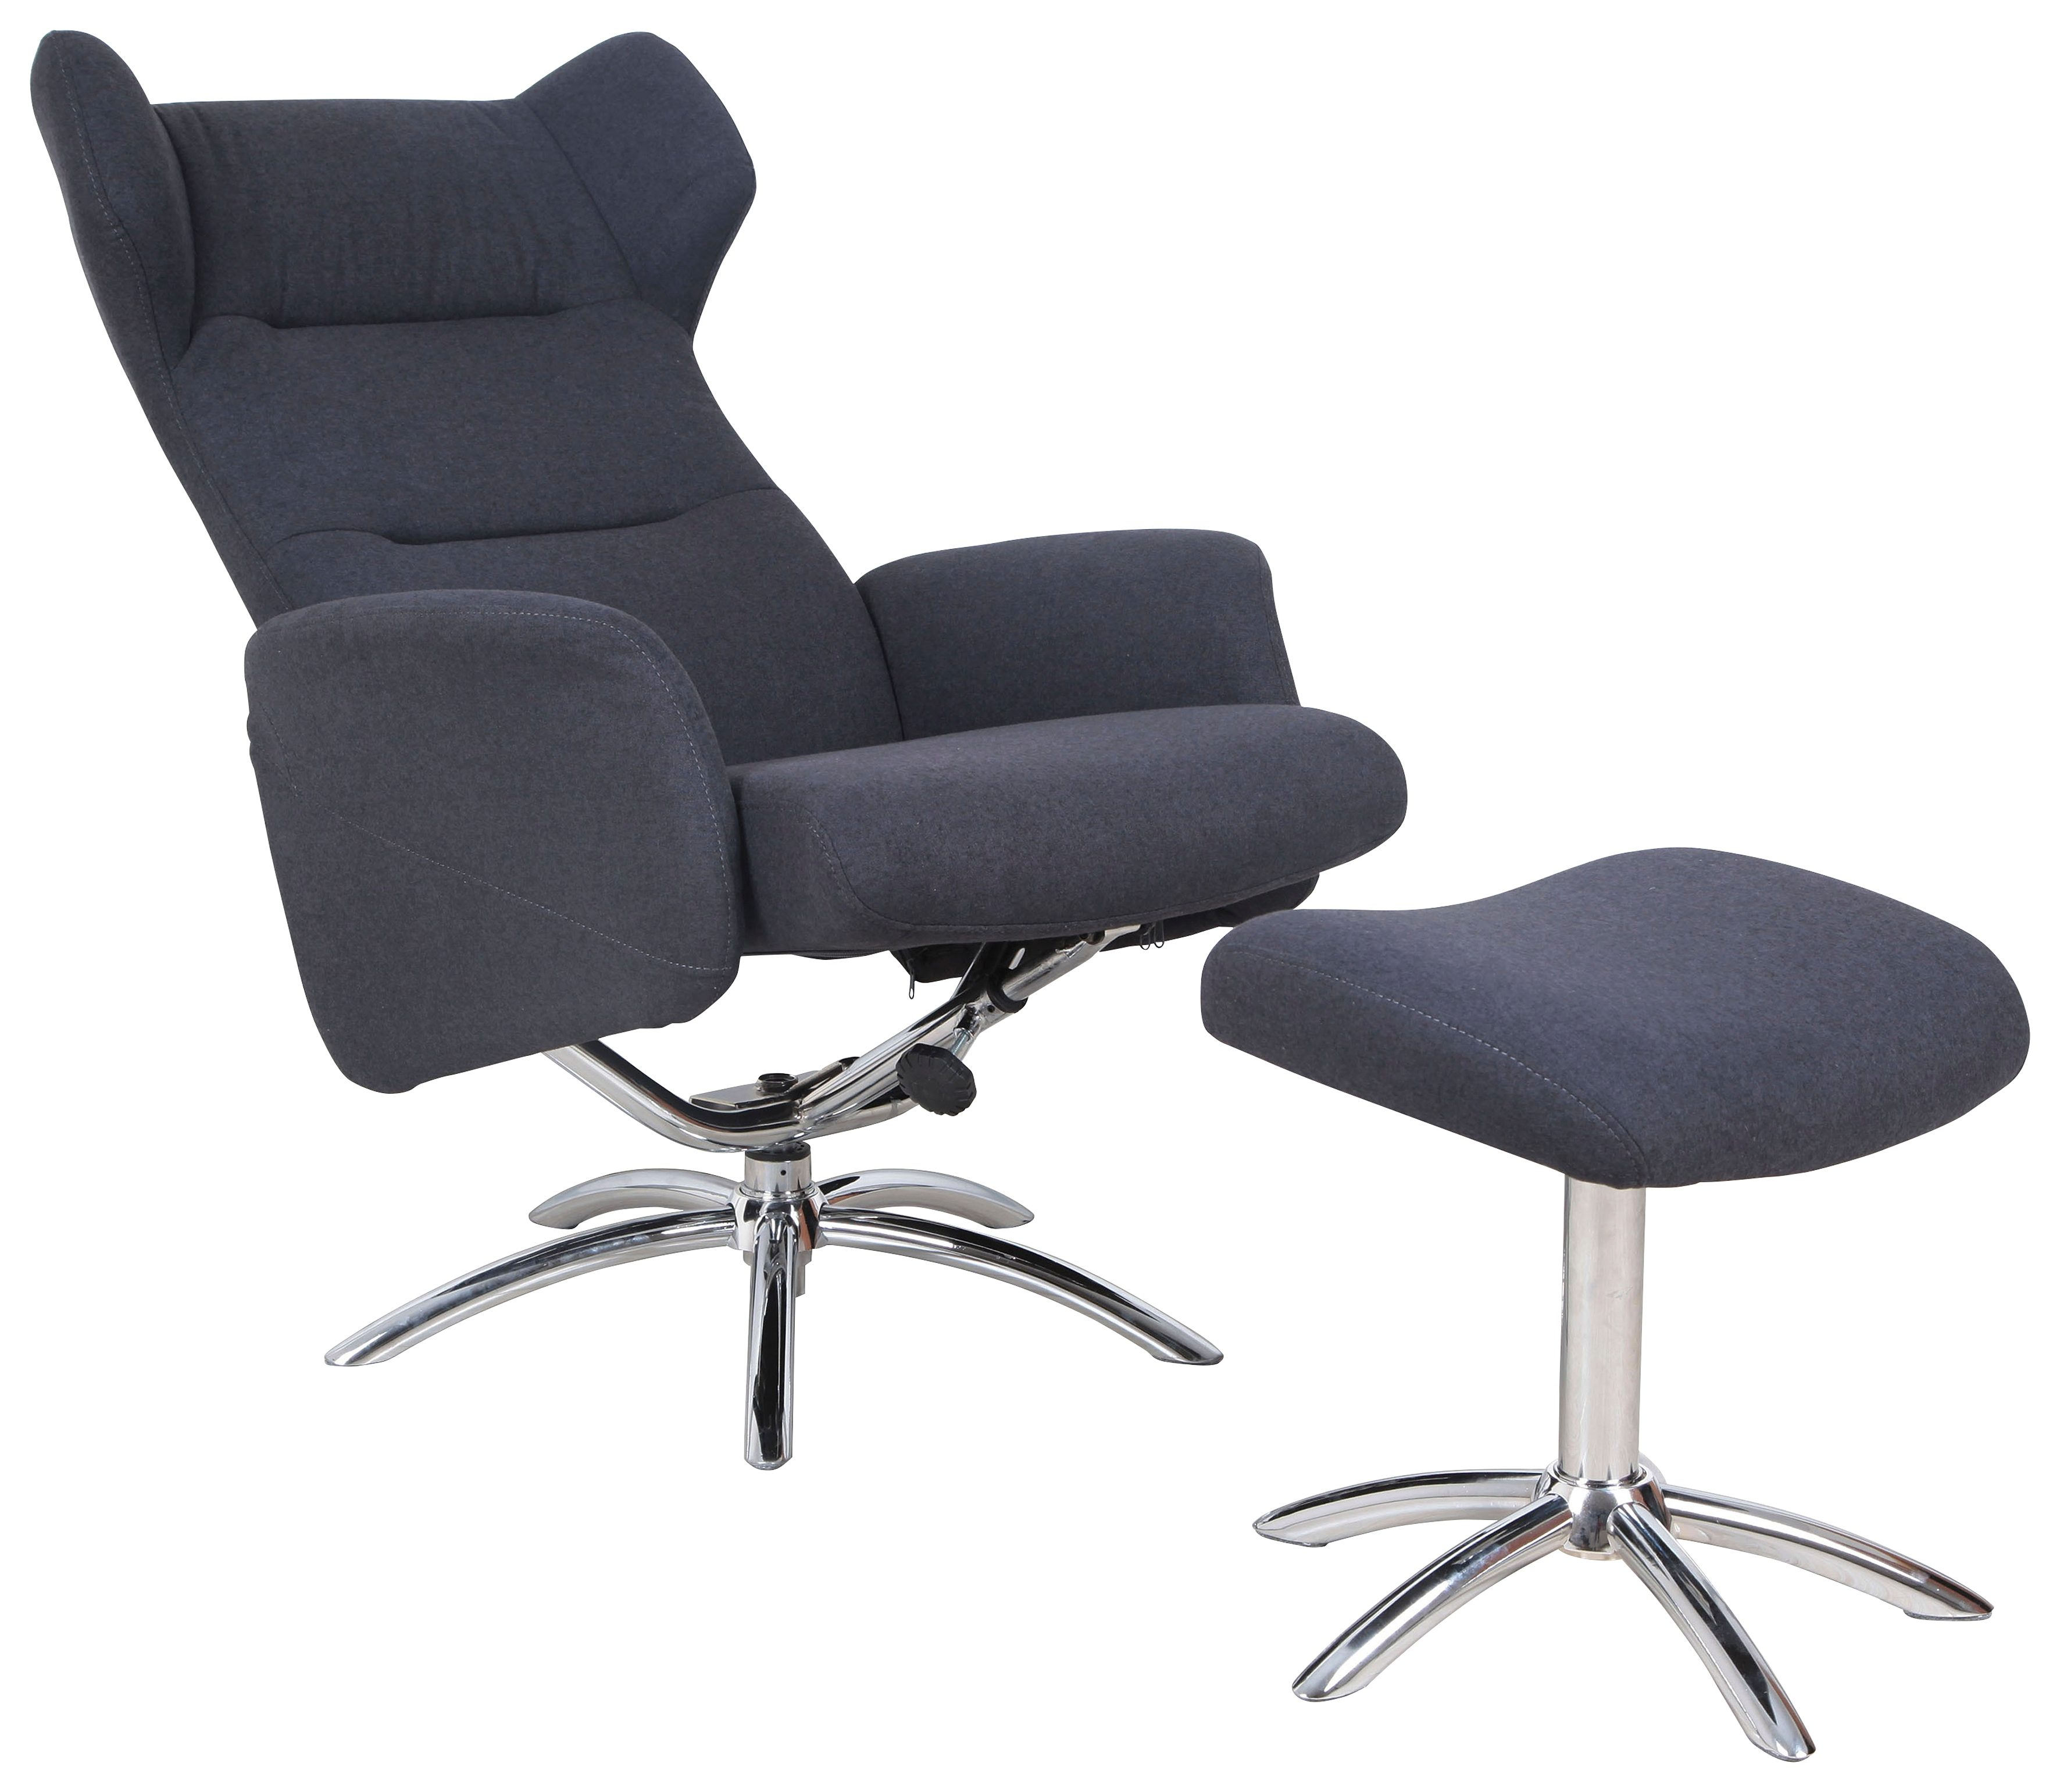 DUO Collection Ohrensessel, inklusive Hocker